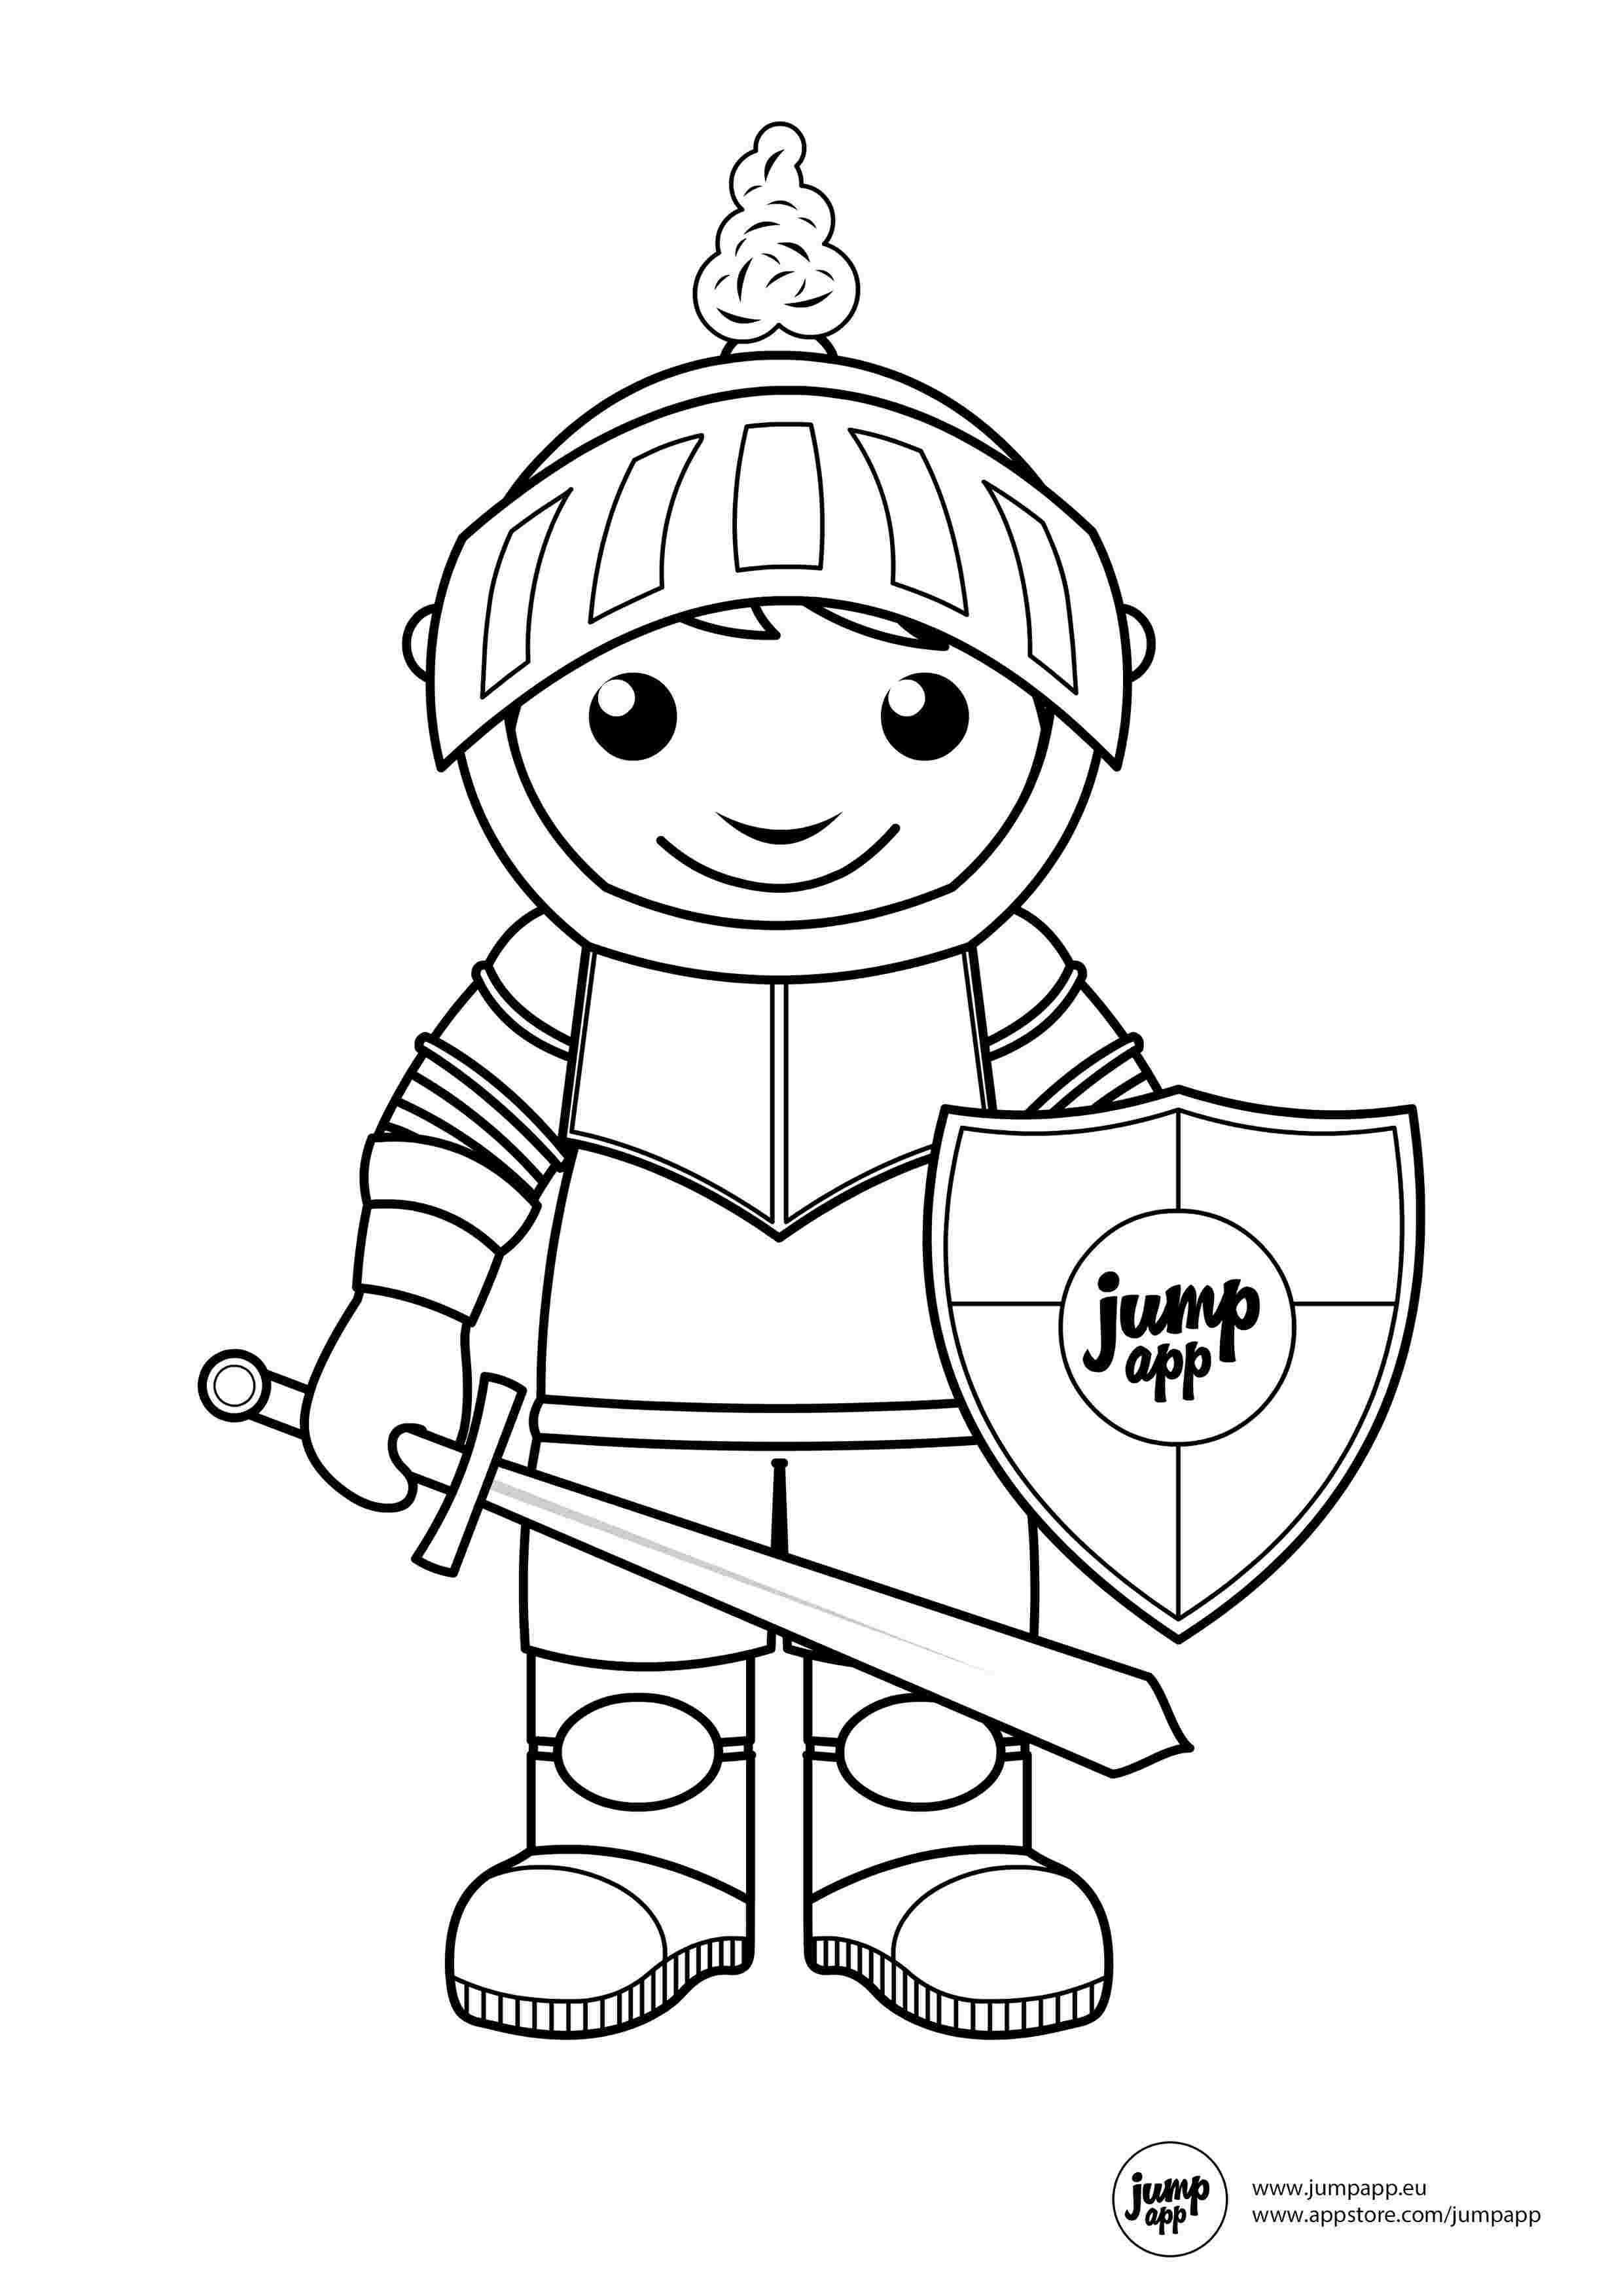 Knight Coloring Pages 9999 Printable Coloring Amazing